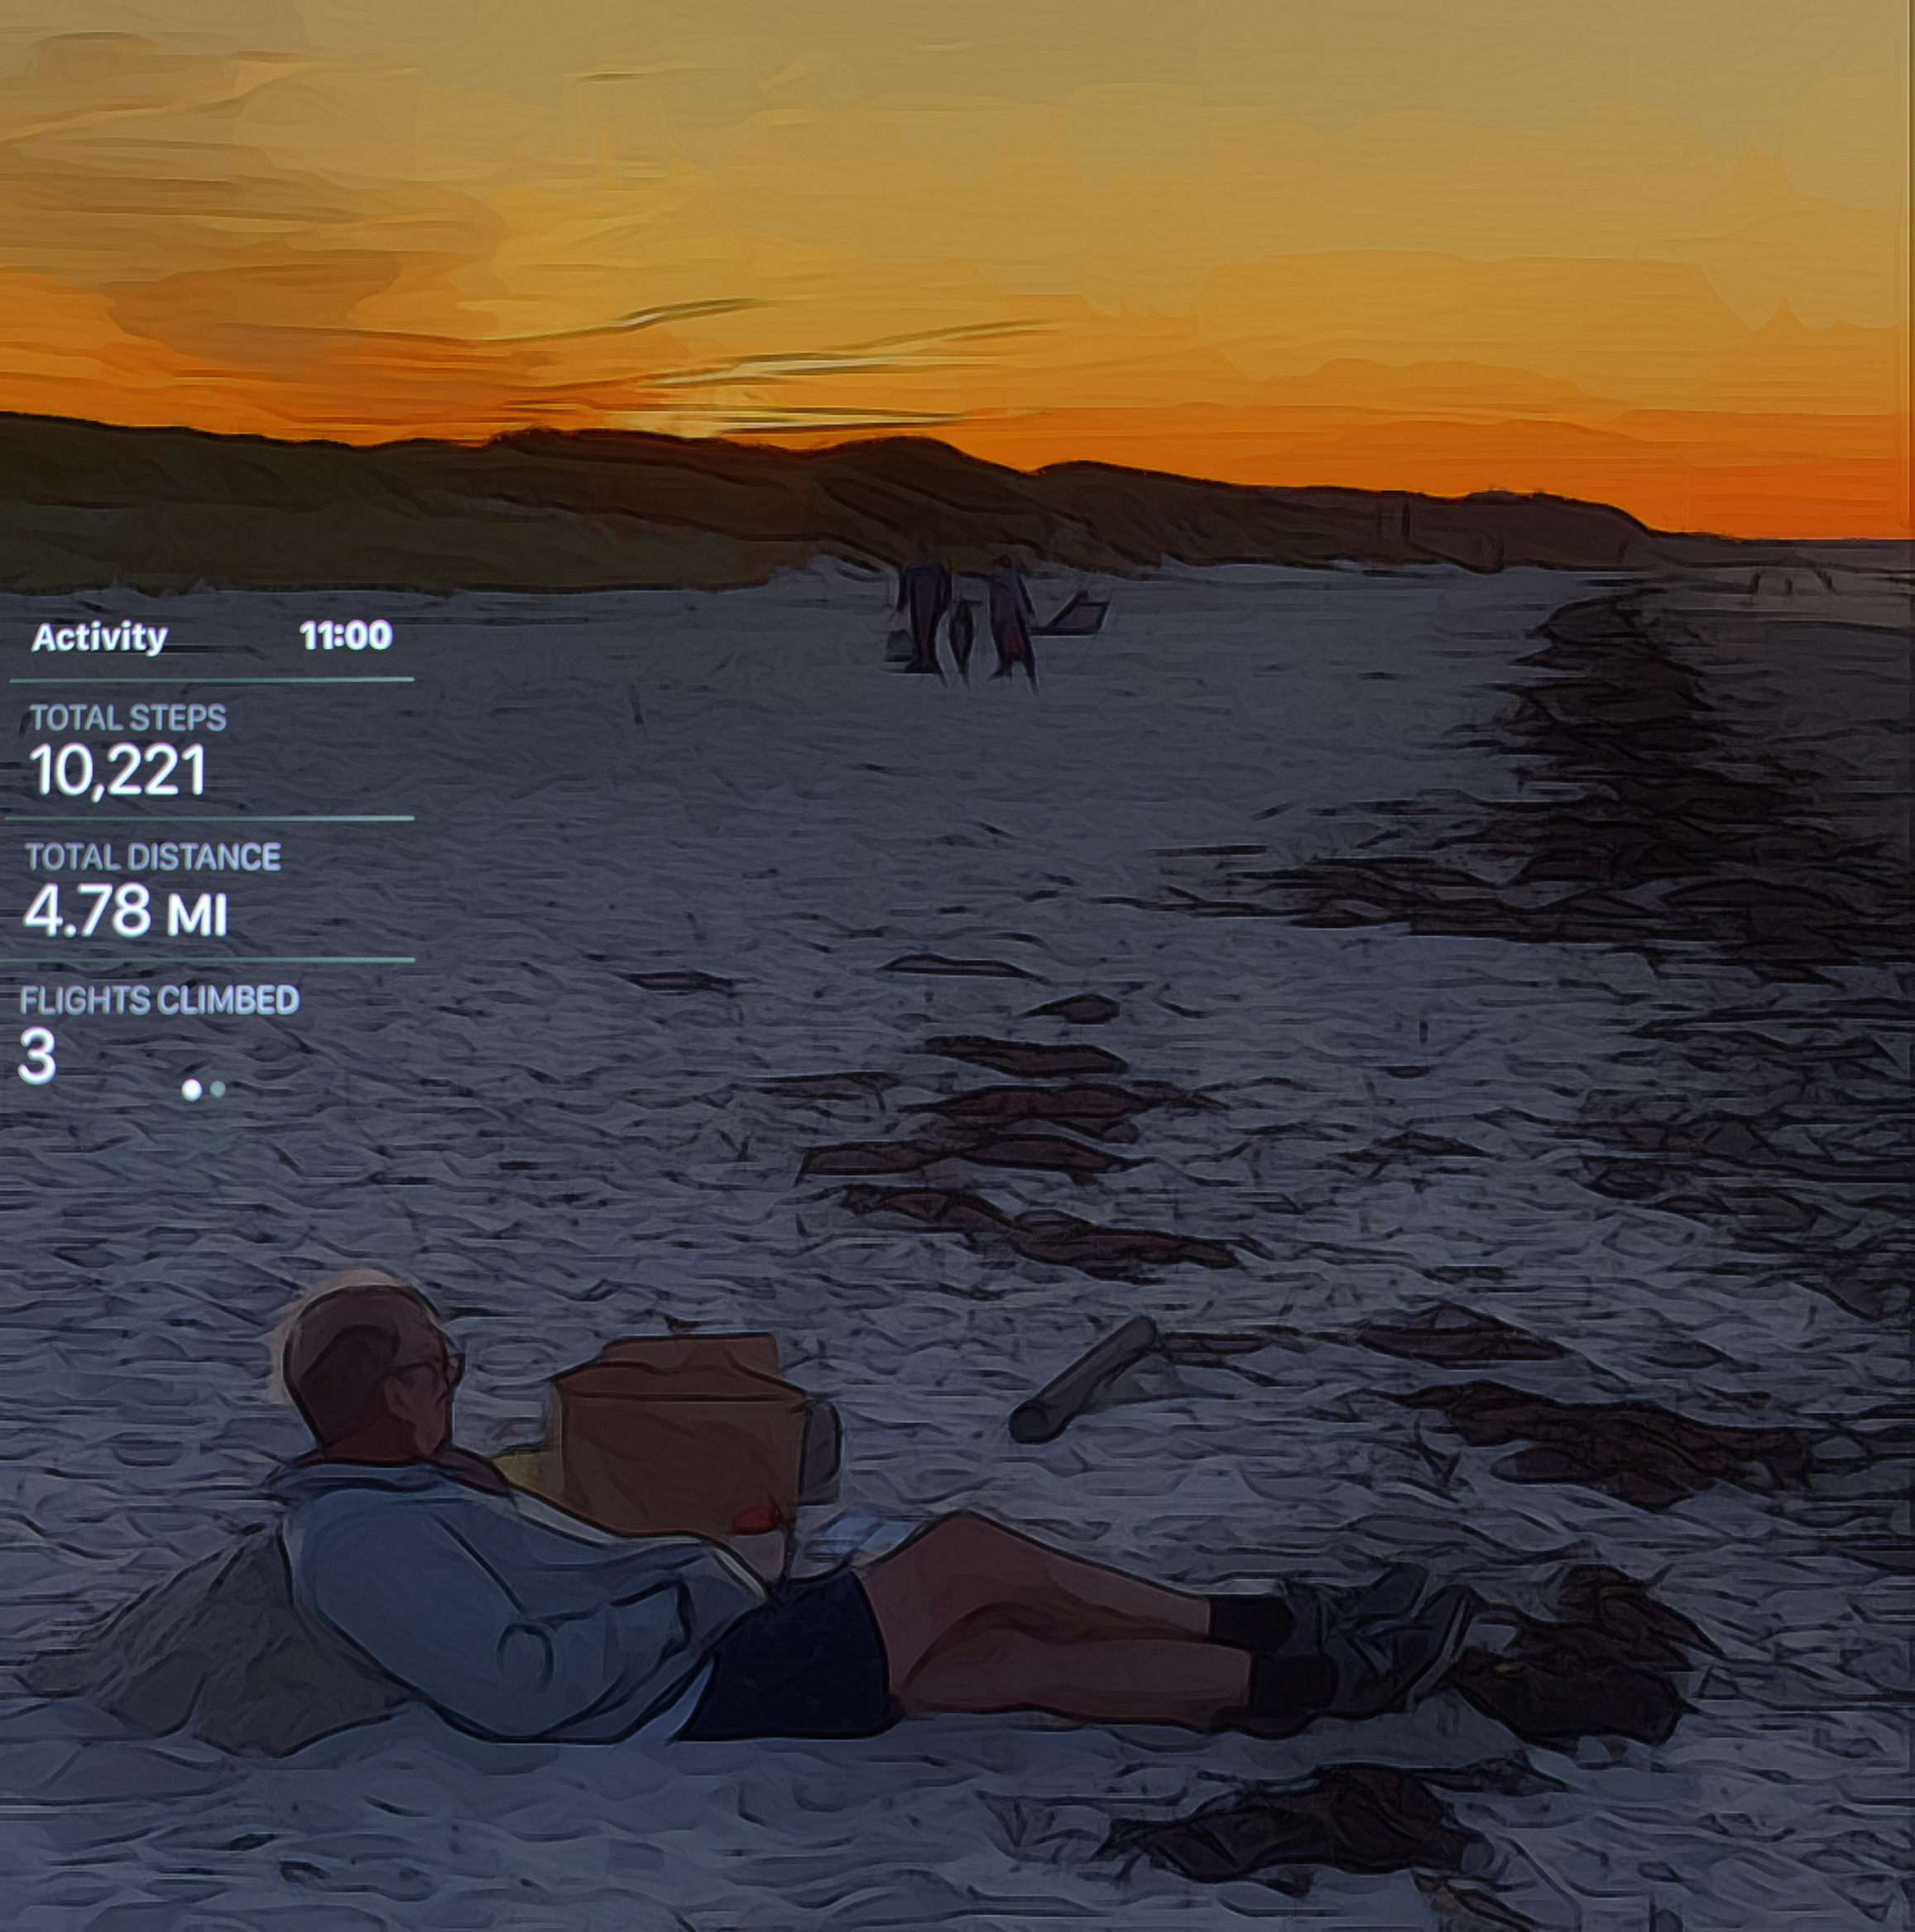 September 27, 2019 - I did it! I exceeded 10K steps after only 2 months post-op! Now, I feel like this guy: I need a nap and I don't care where I lay my head! 👍 [Image taken at sunset tonight at Sandy Neck Beach; edited in iColorama.]